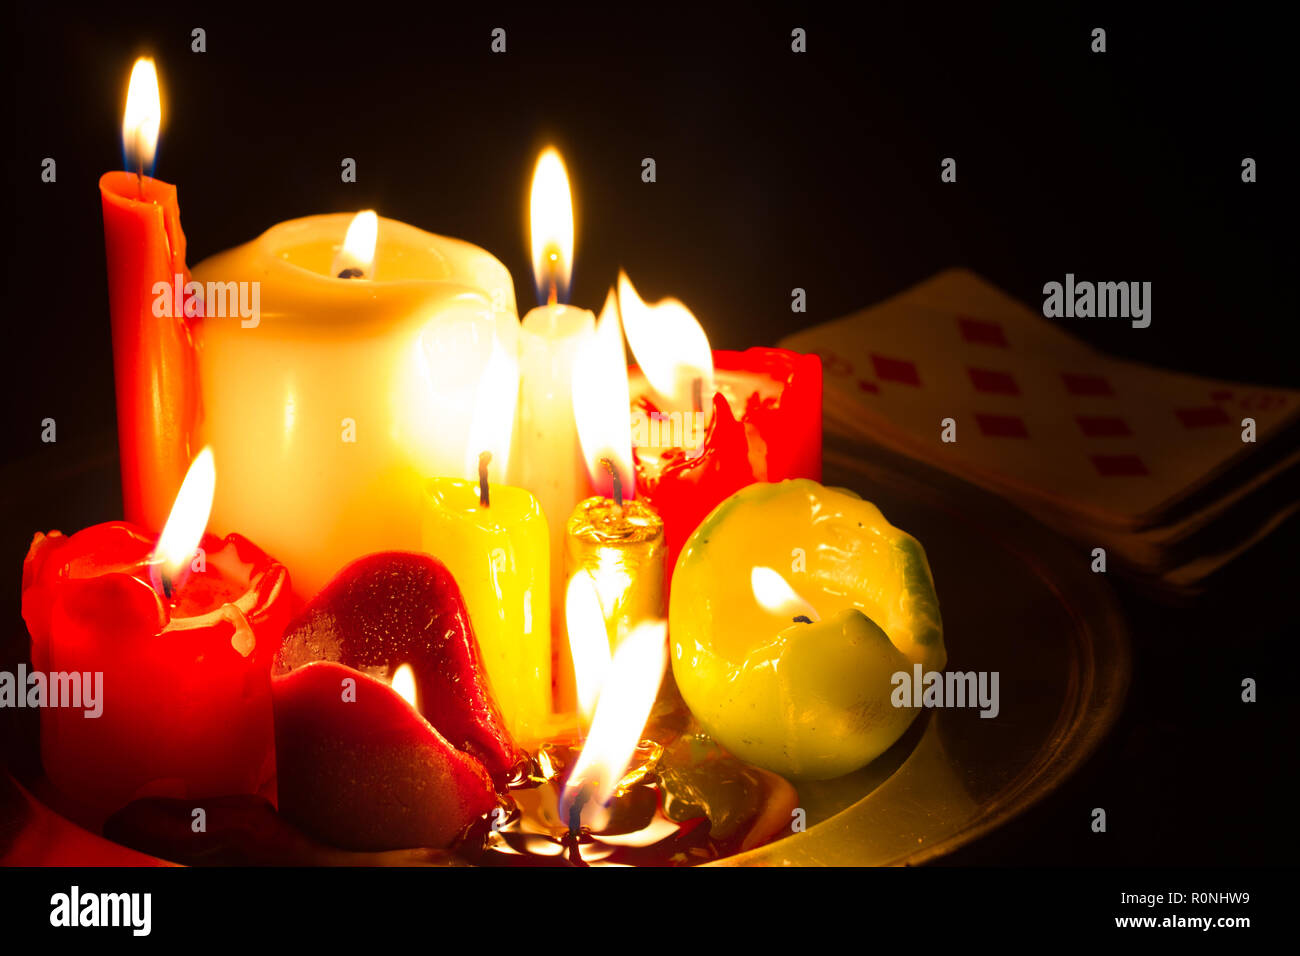 Spells omens and magic abstract background with candles in night - Stock Image